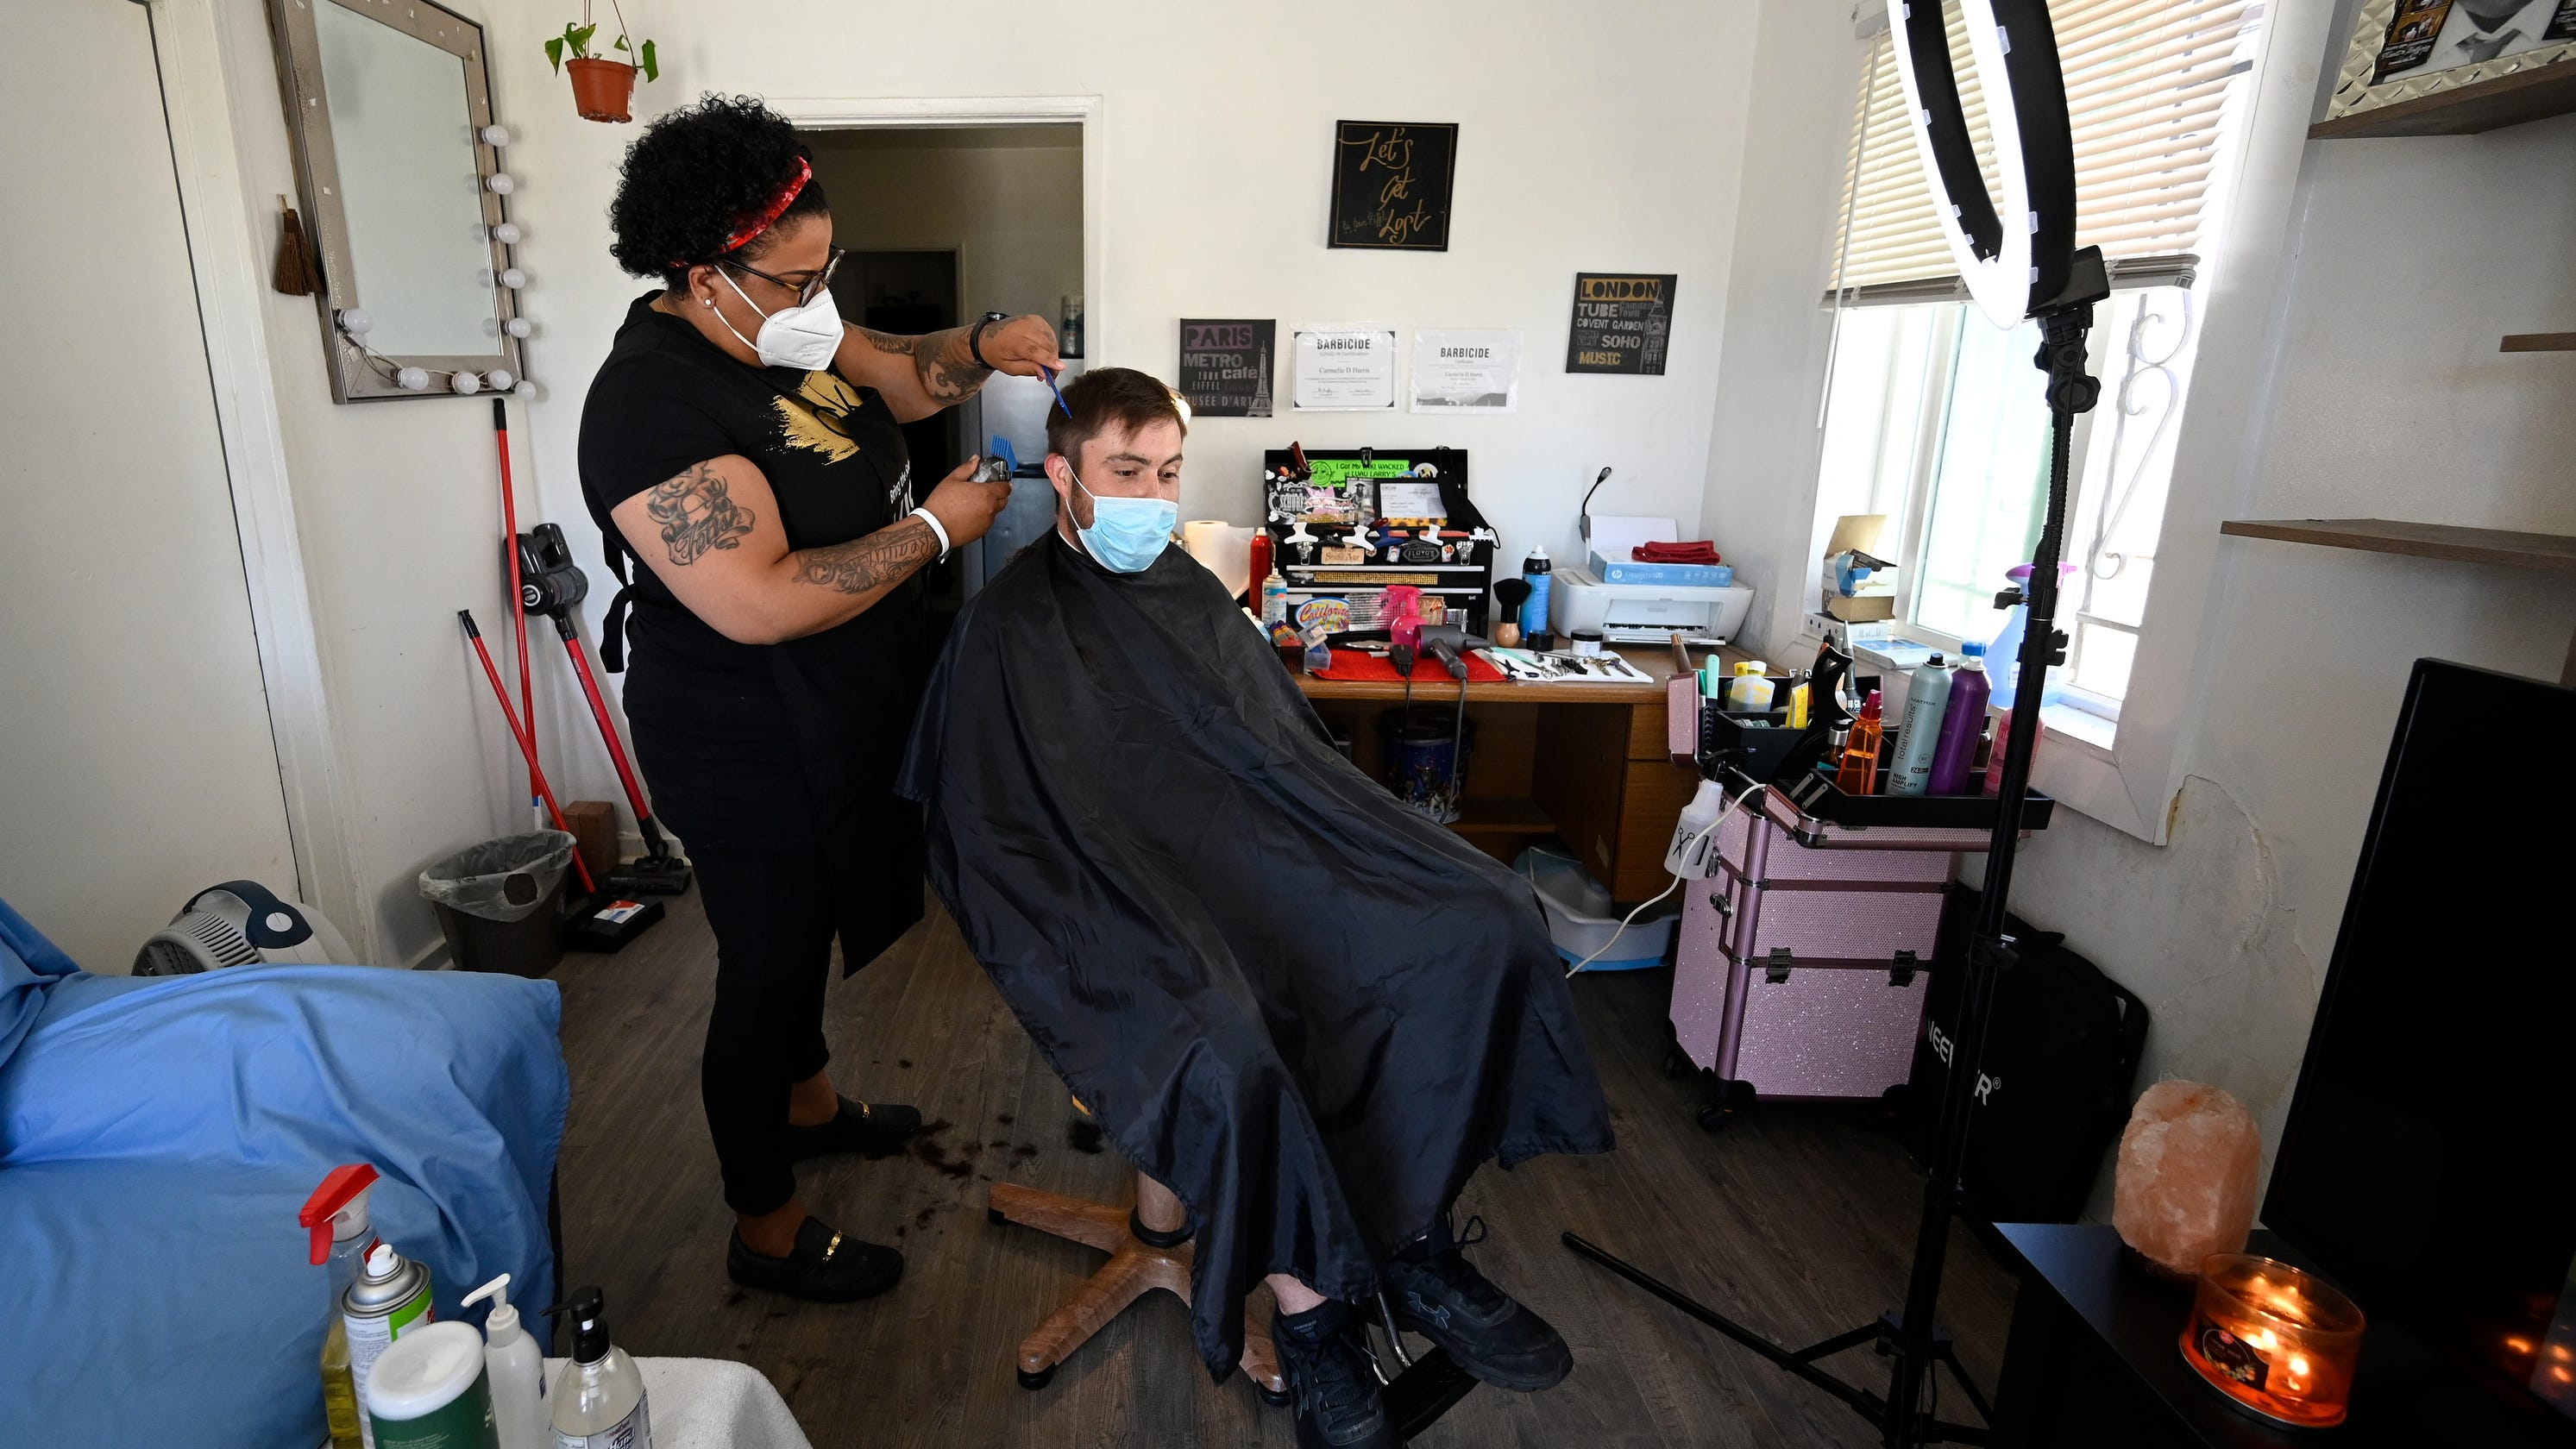 Barbers and hair stylists defy stay at home orders